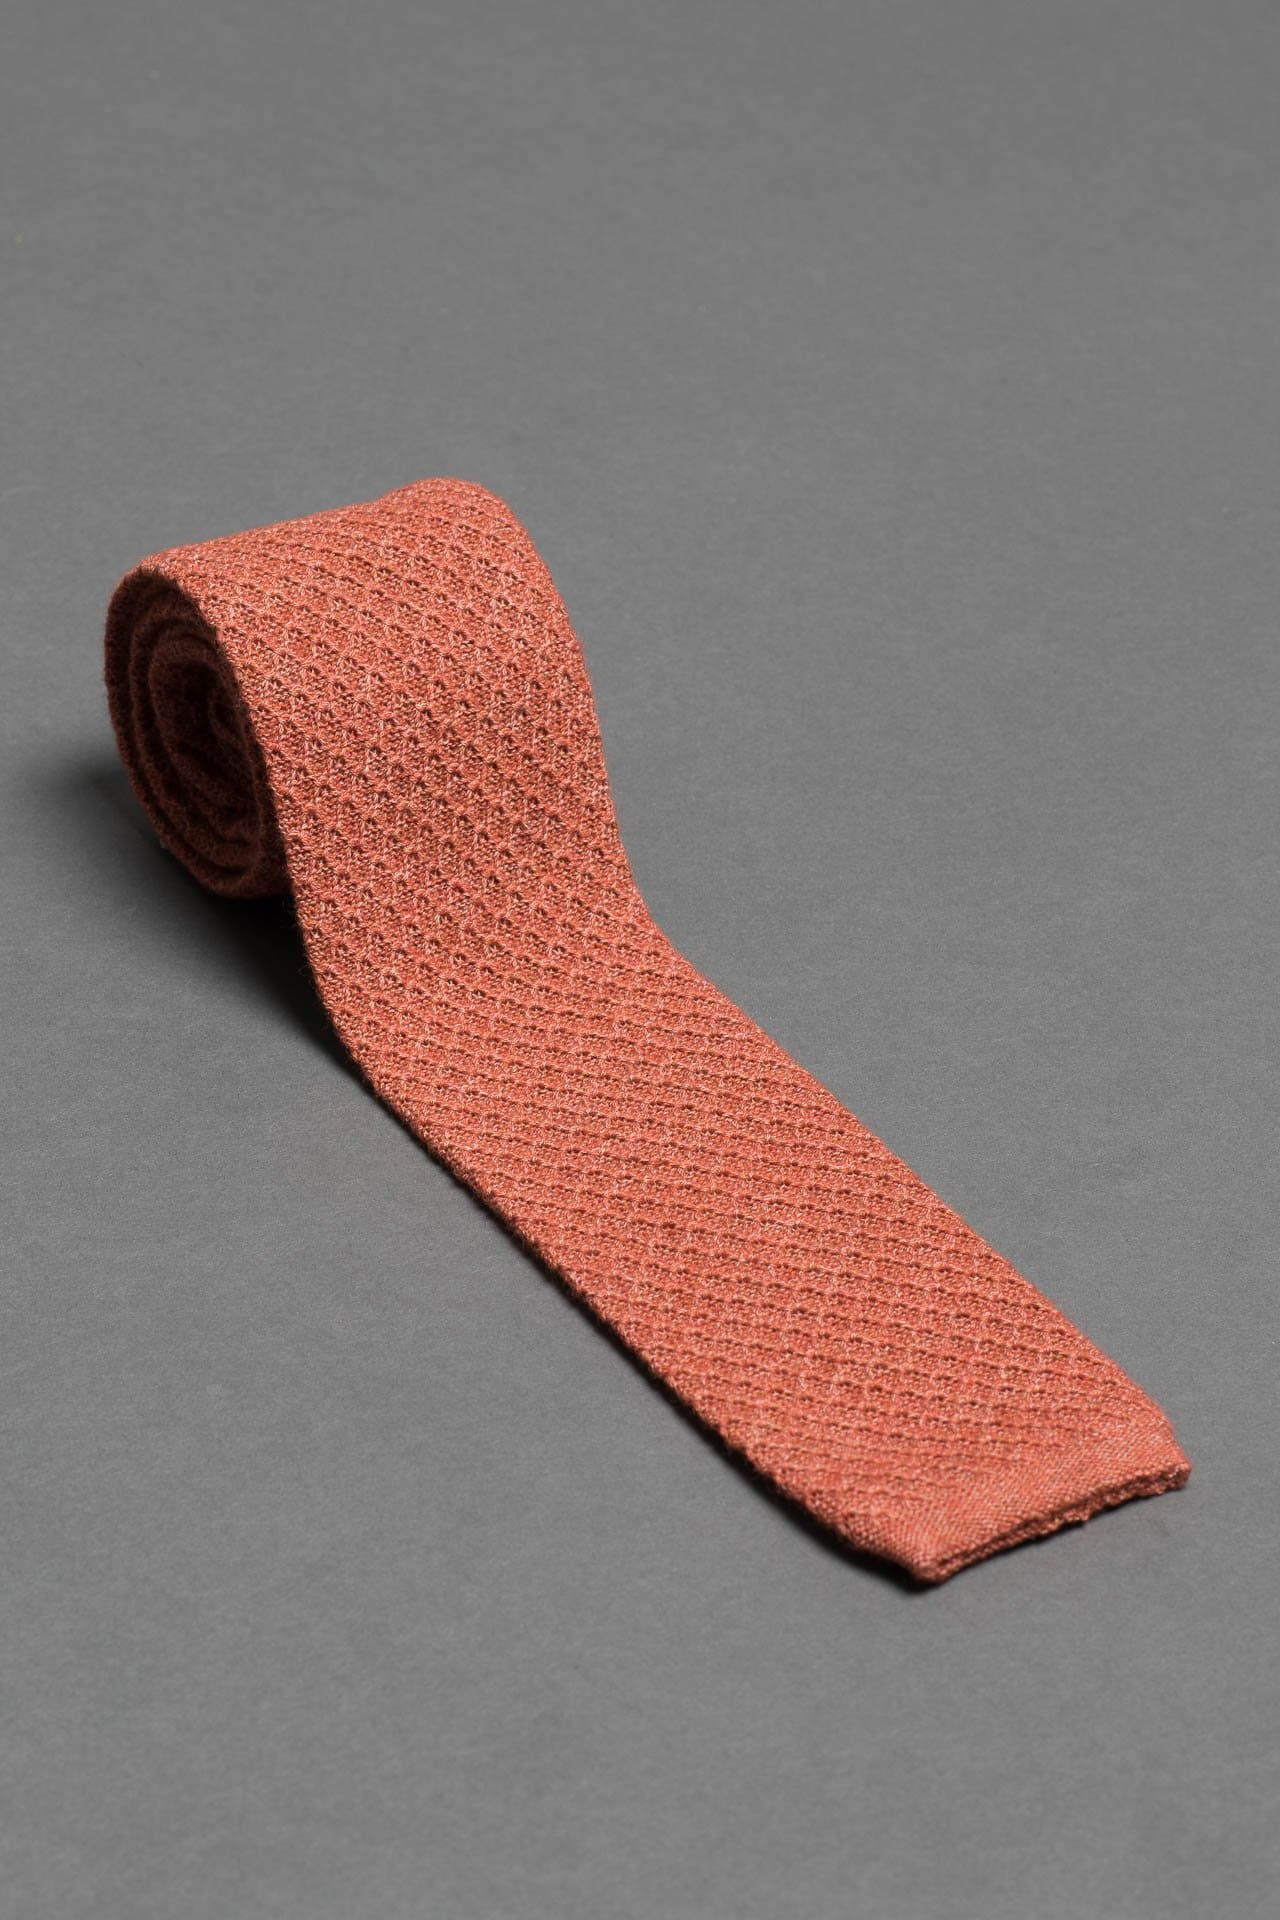 Copper-Orange-cotton-knitted-tie-with-square-tip-made-in-italy